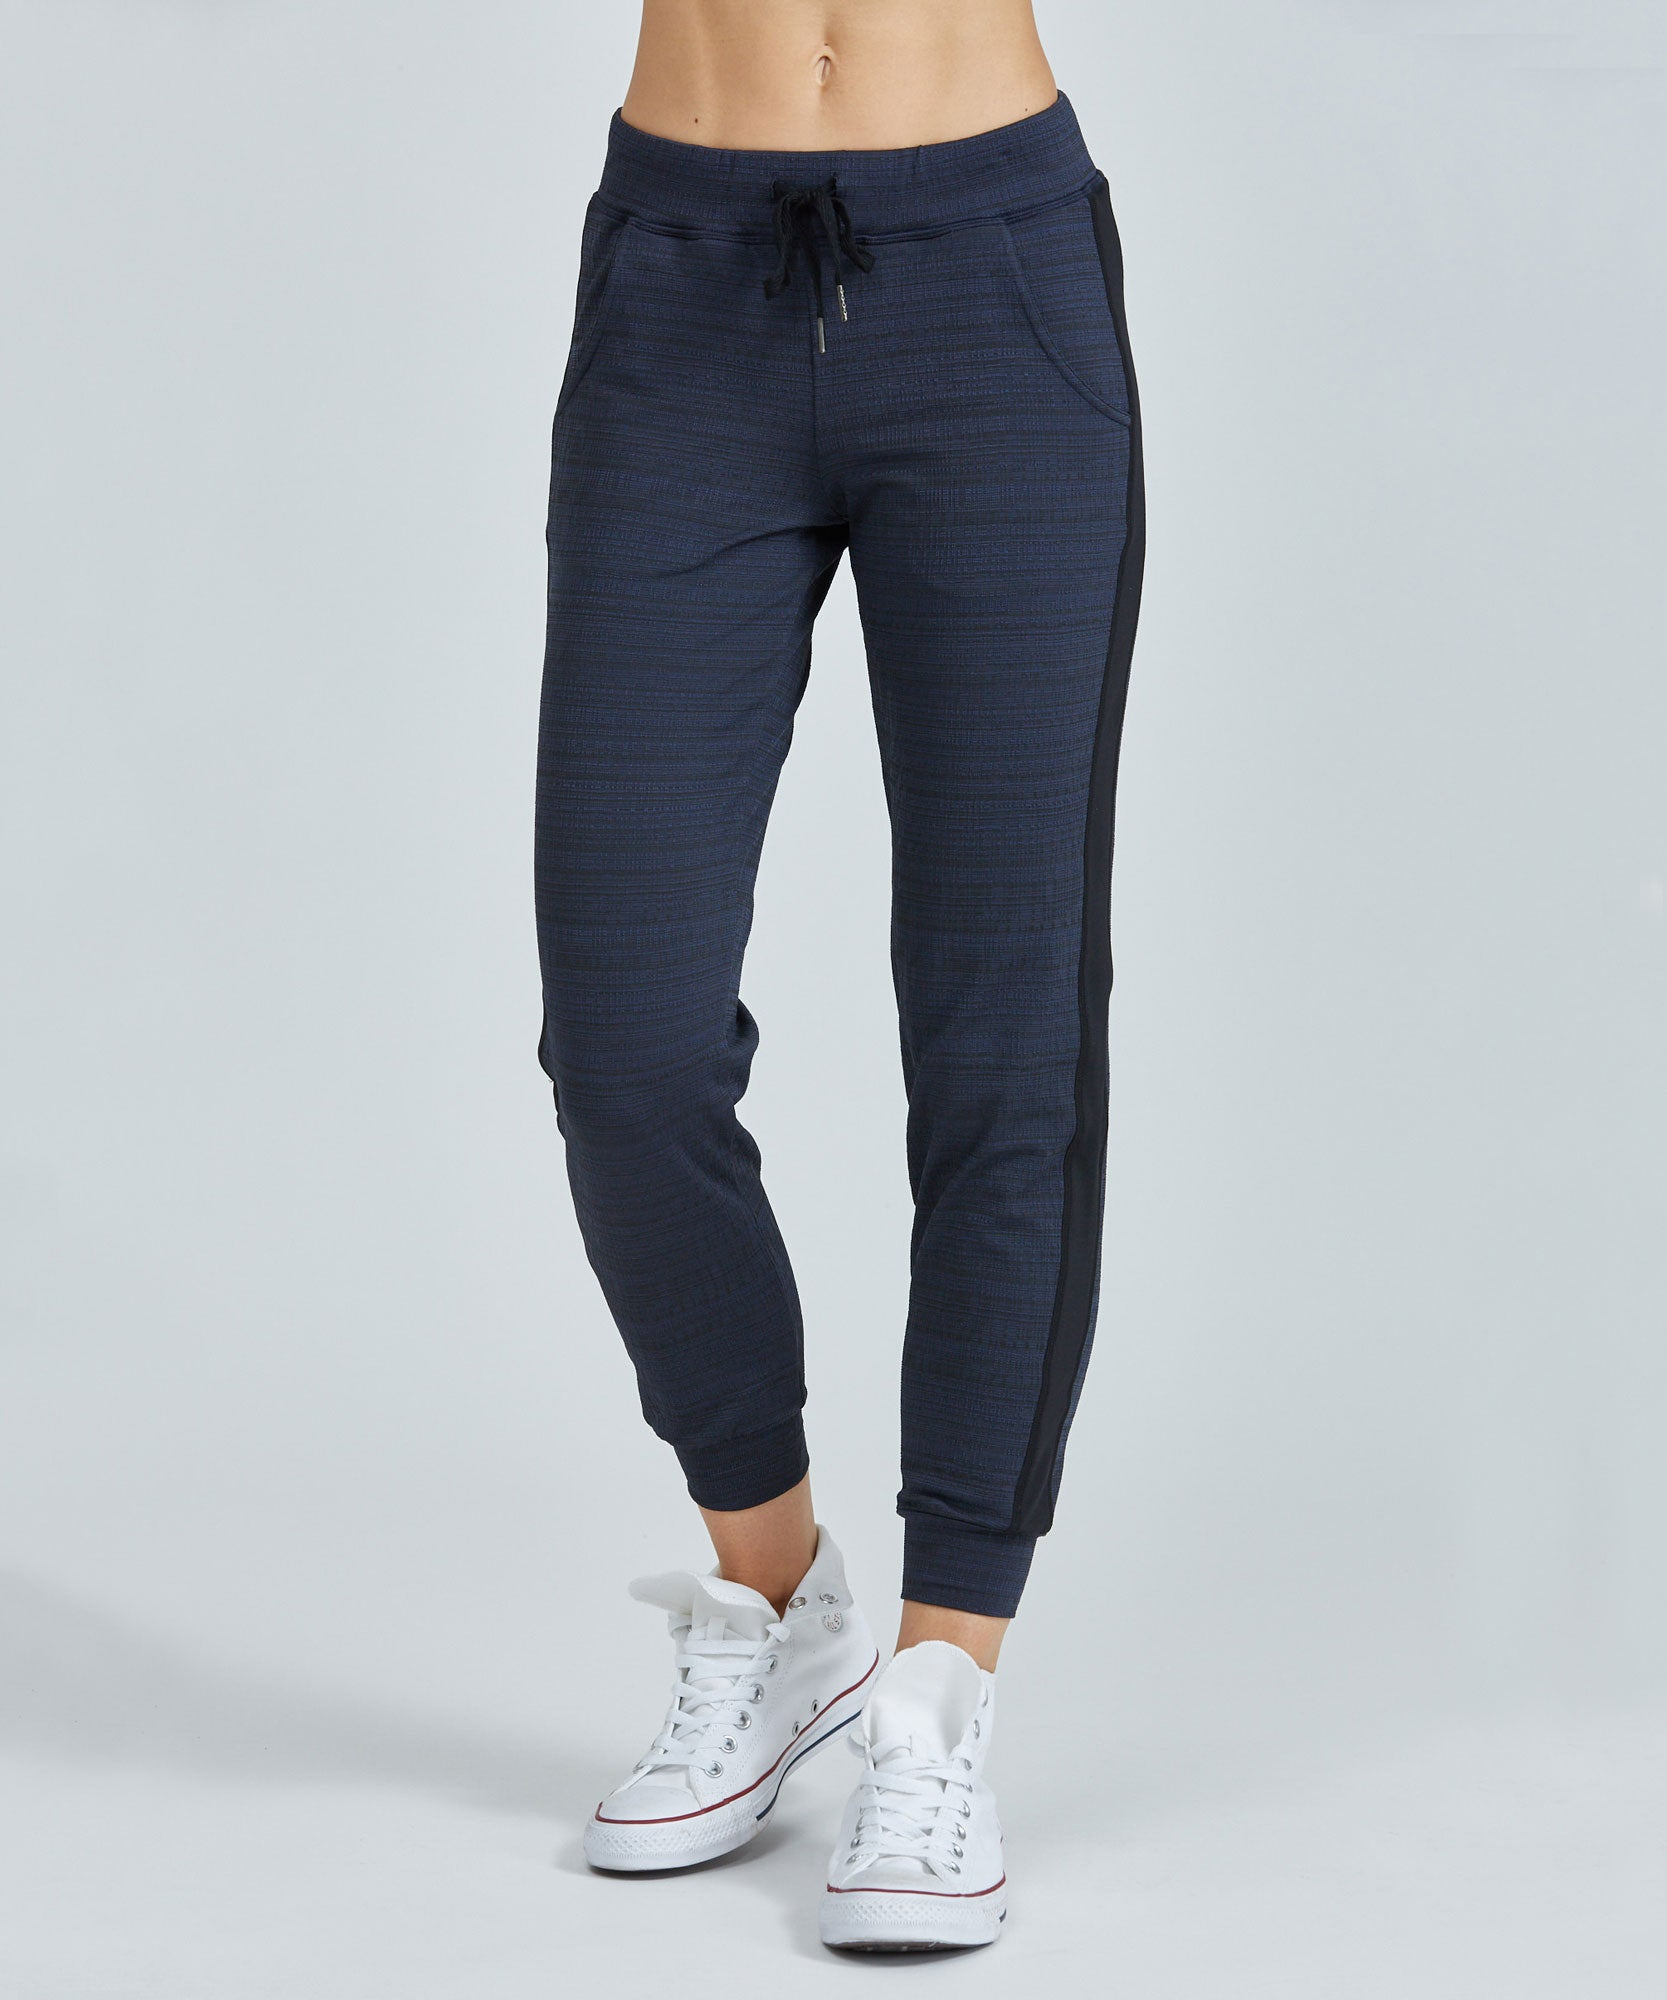 Urban Track Pant - Black Travertine